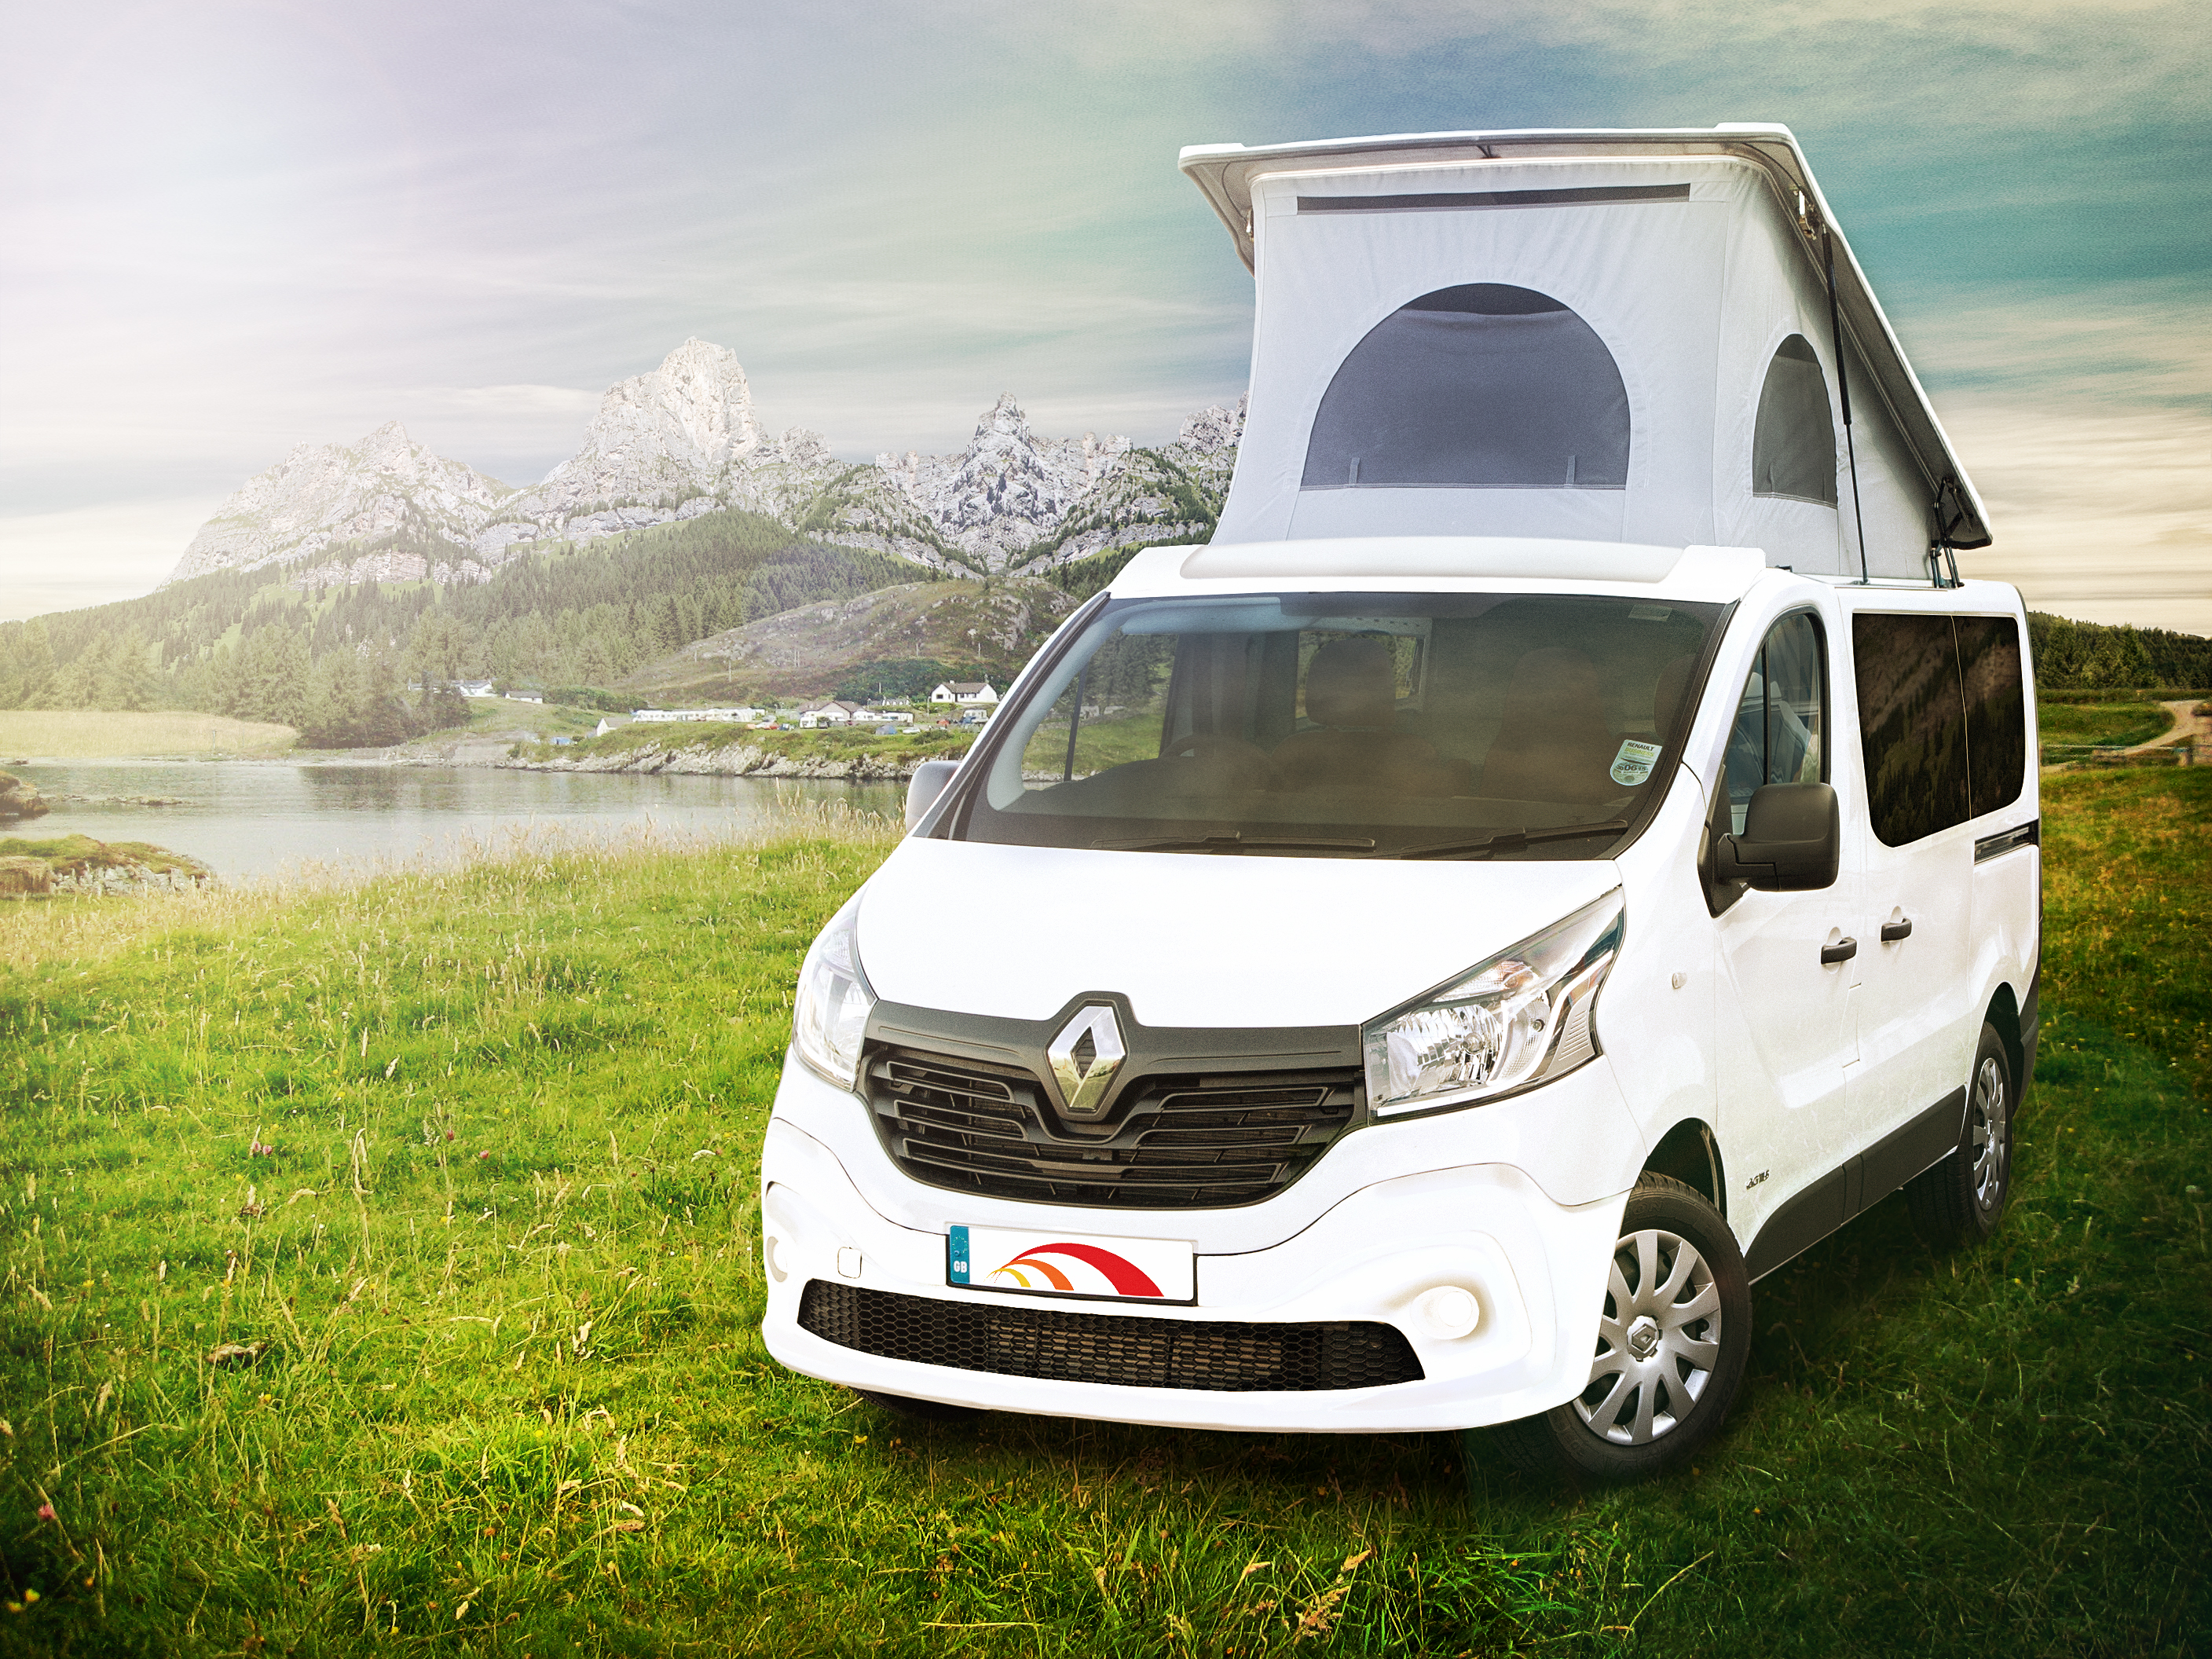 Vw Campervan For Sale >> The ALL-NEW Renault Trafic - Hillside Leisure